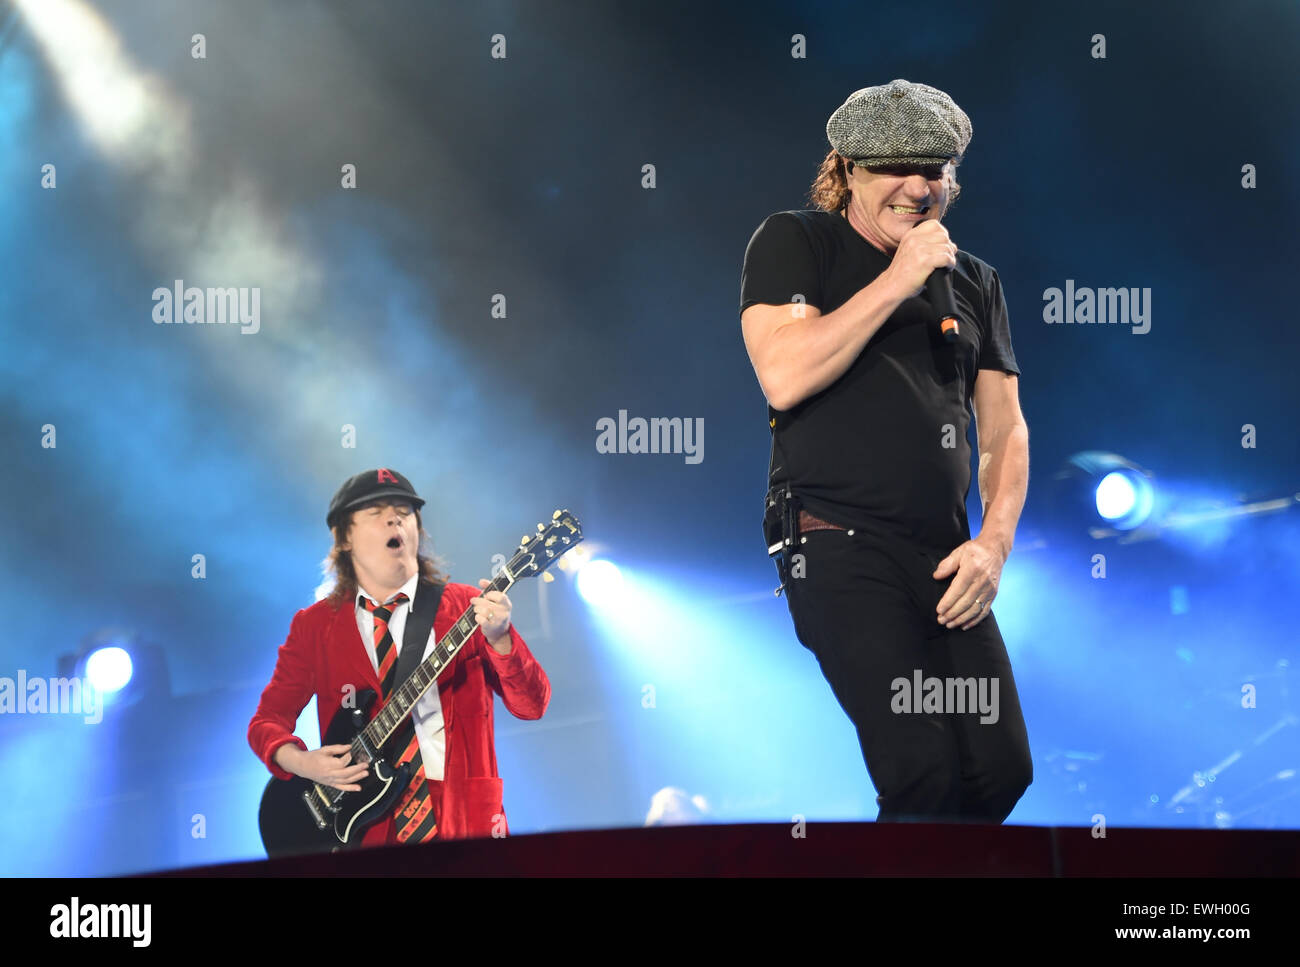 Angus Young Ac Dc Live In Stock Photos & Angus Young Ac Dc Live In ...